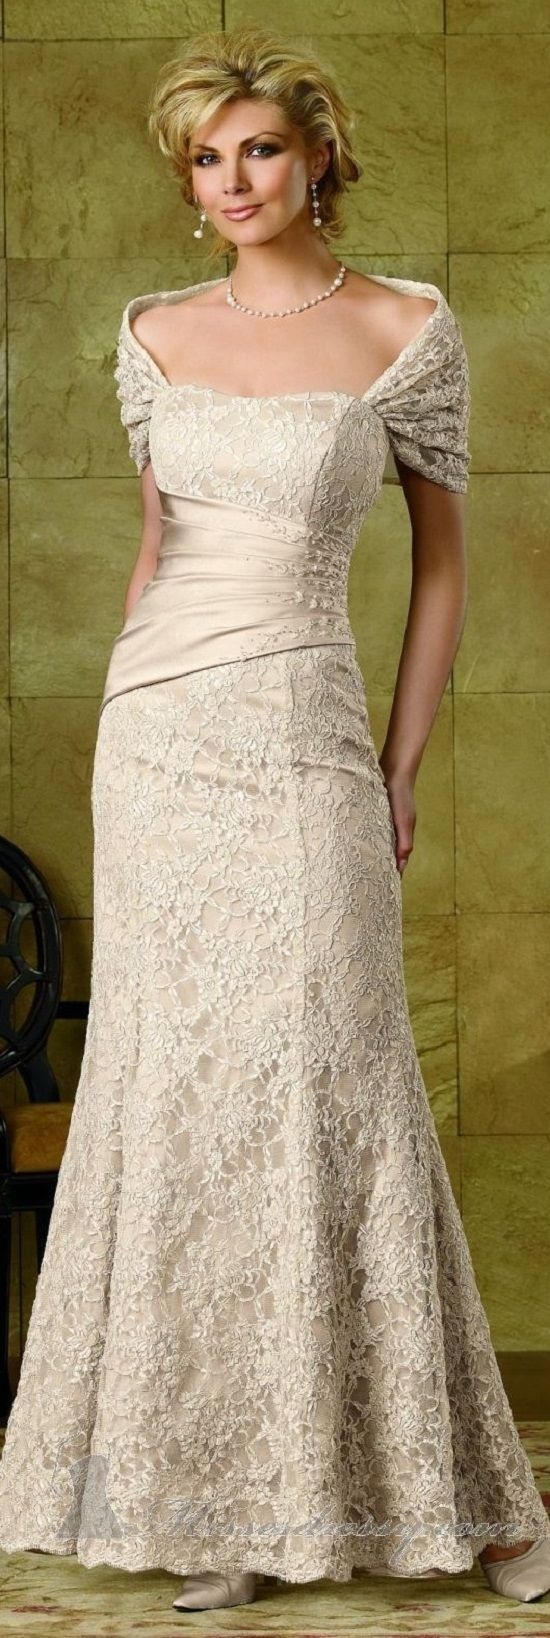 wedding gowns for older brides over 40